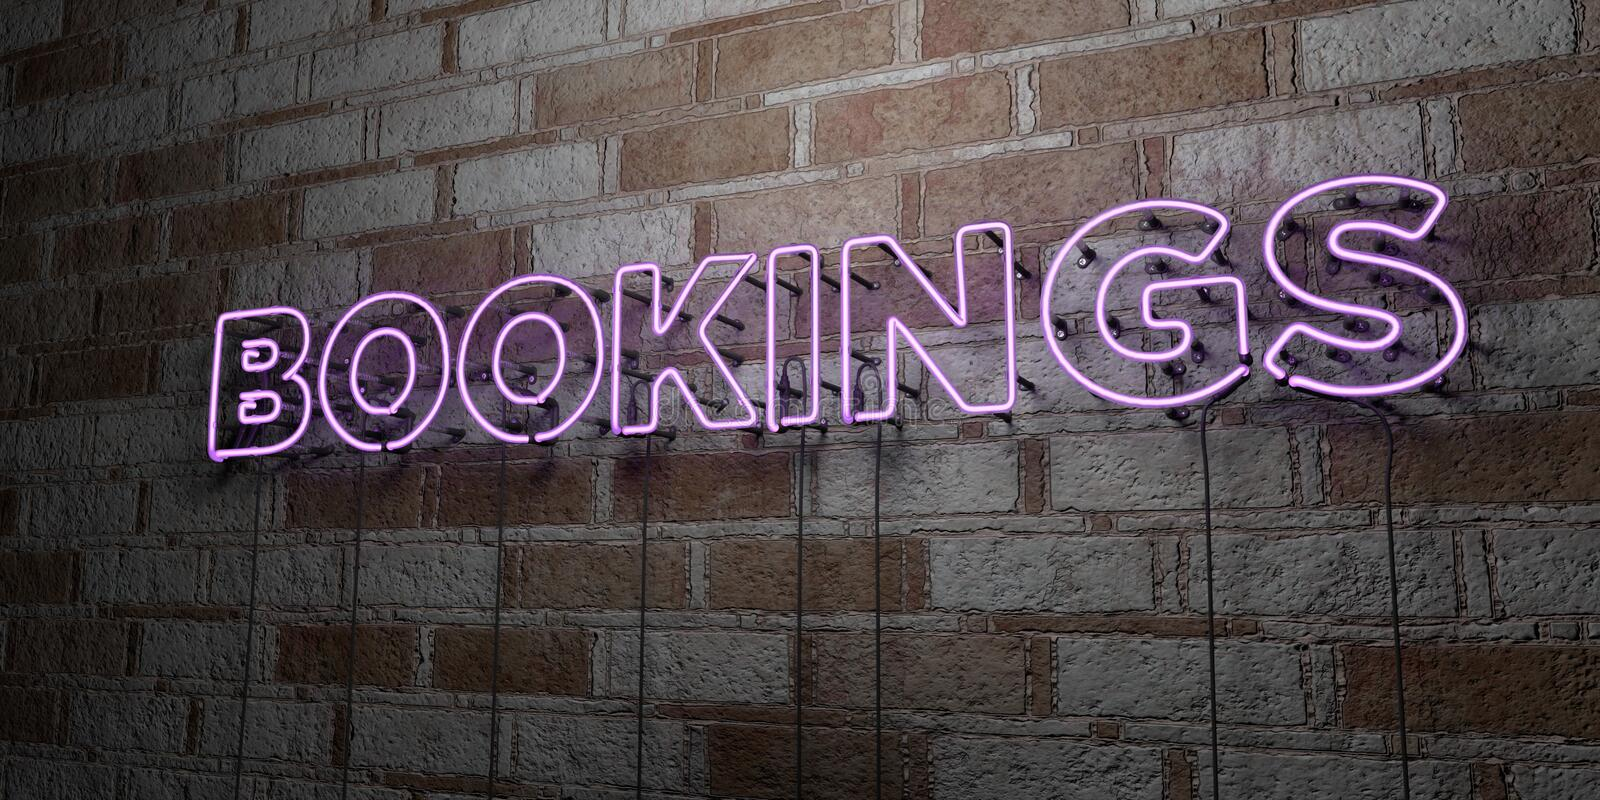 BOOKINGS - Glowing Neon Sign on stonework wall - 3D rendered royalty free stock illustration. Can be used for online banner ads and direct mailers vector illustration